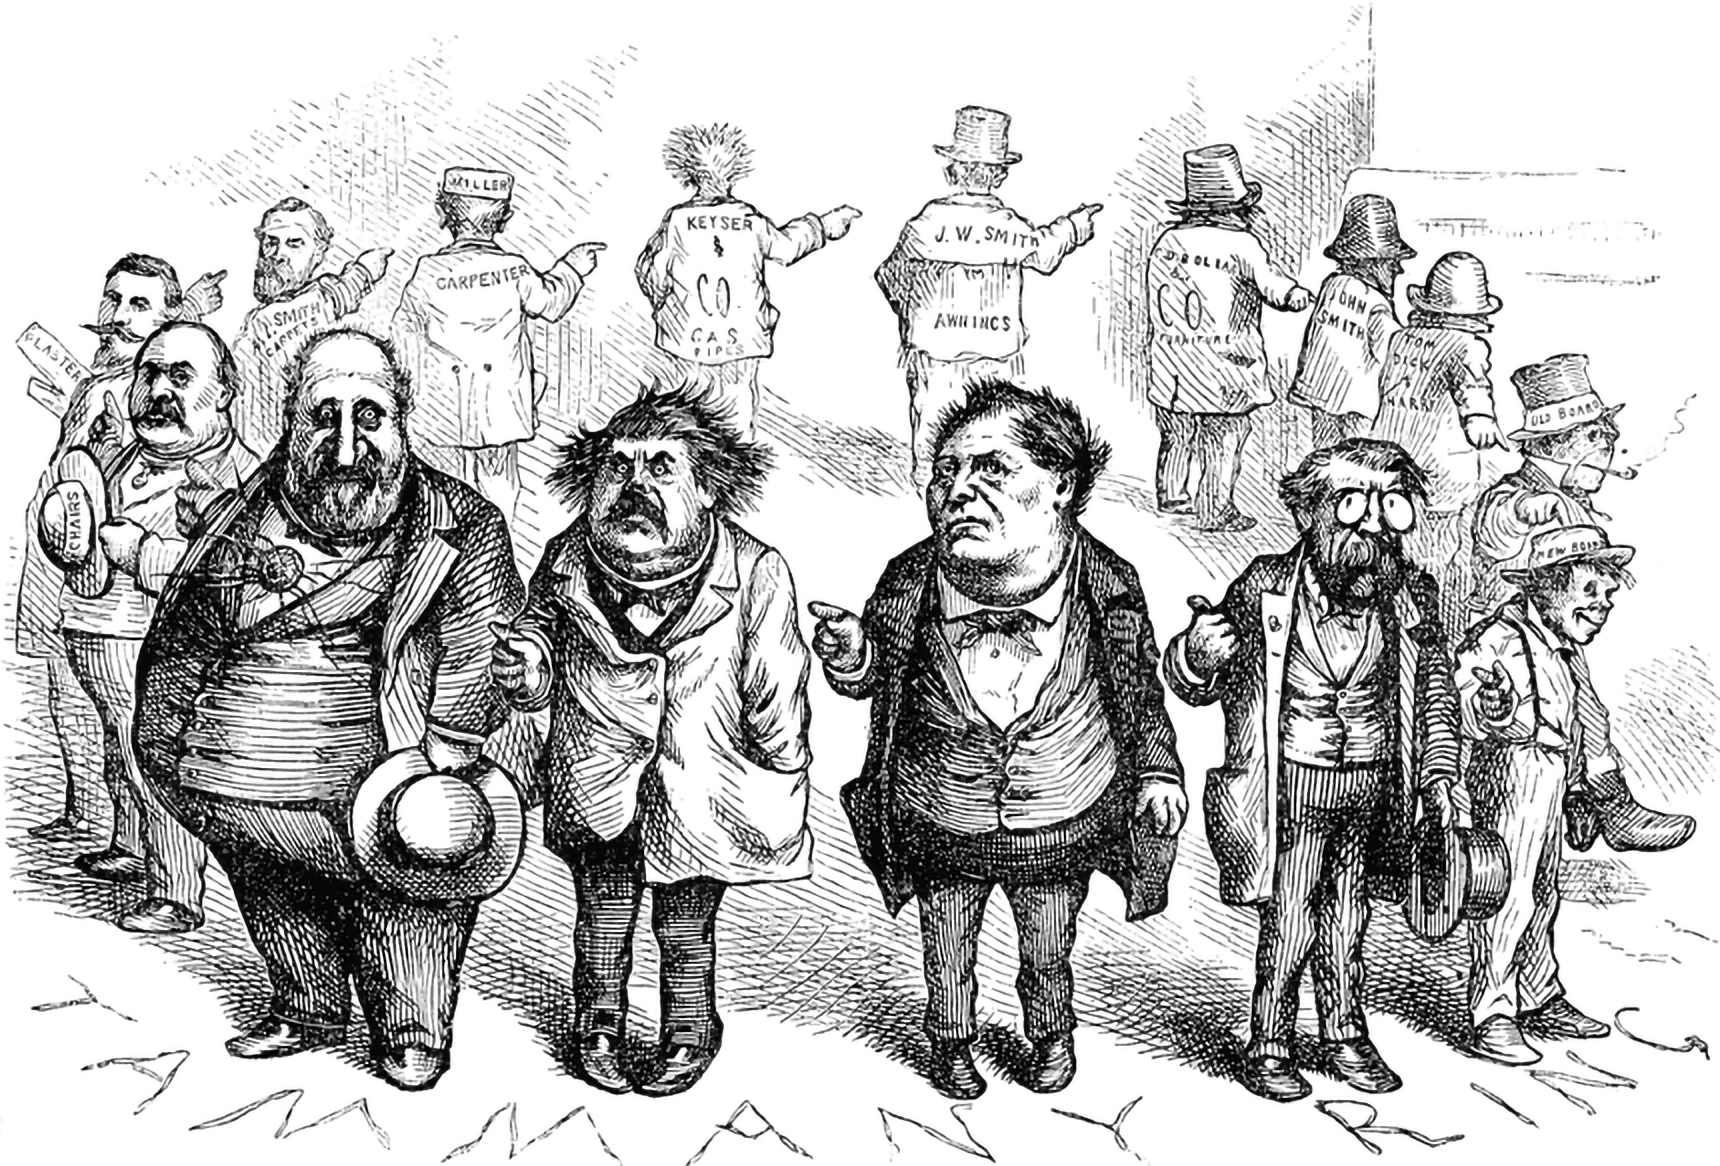 Take a cue from Thomas Nast and expose the ring of corruption in academia before it becomes another Tammany Ring – Source: USF